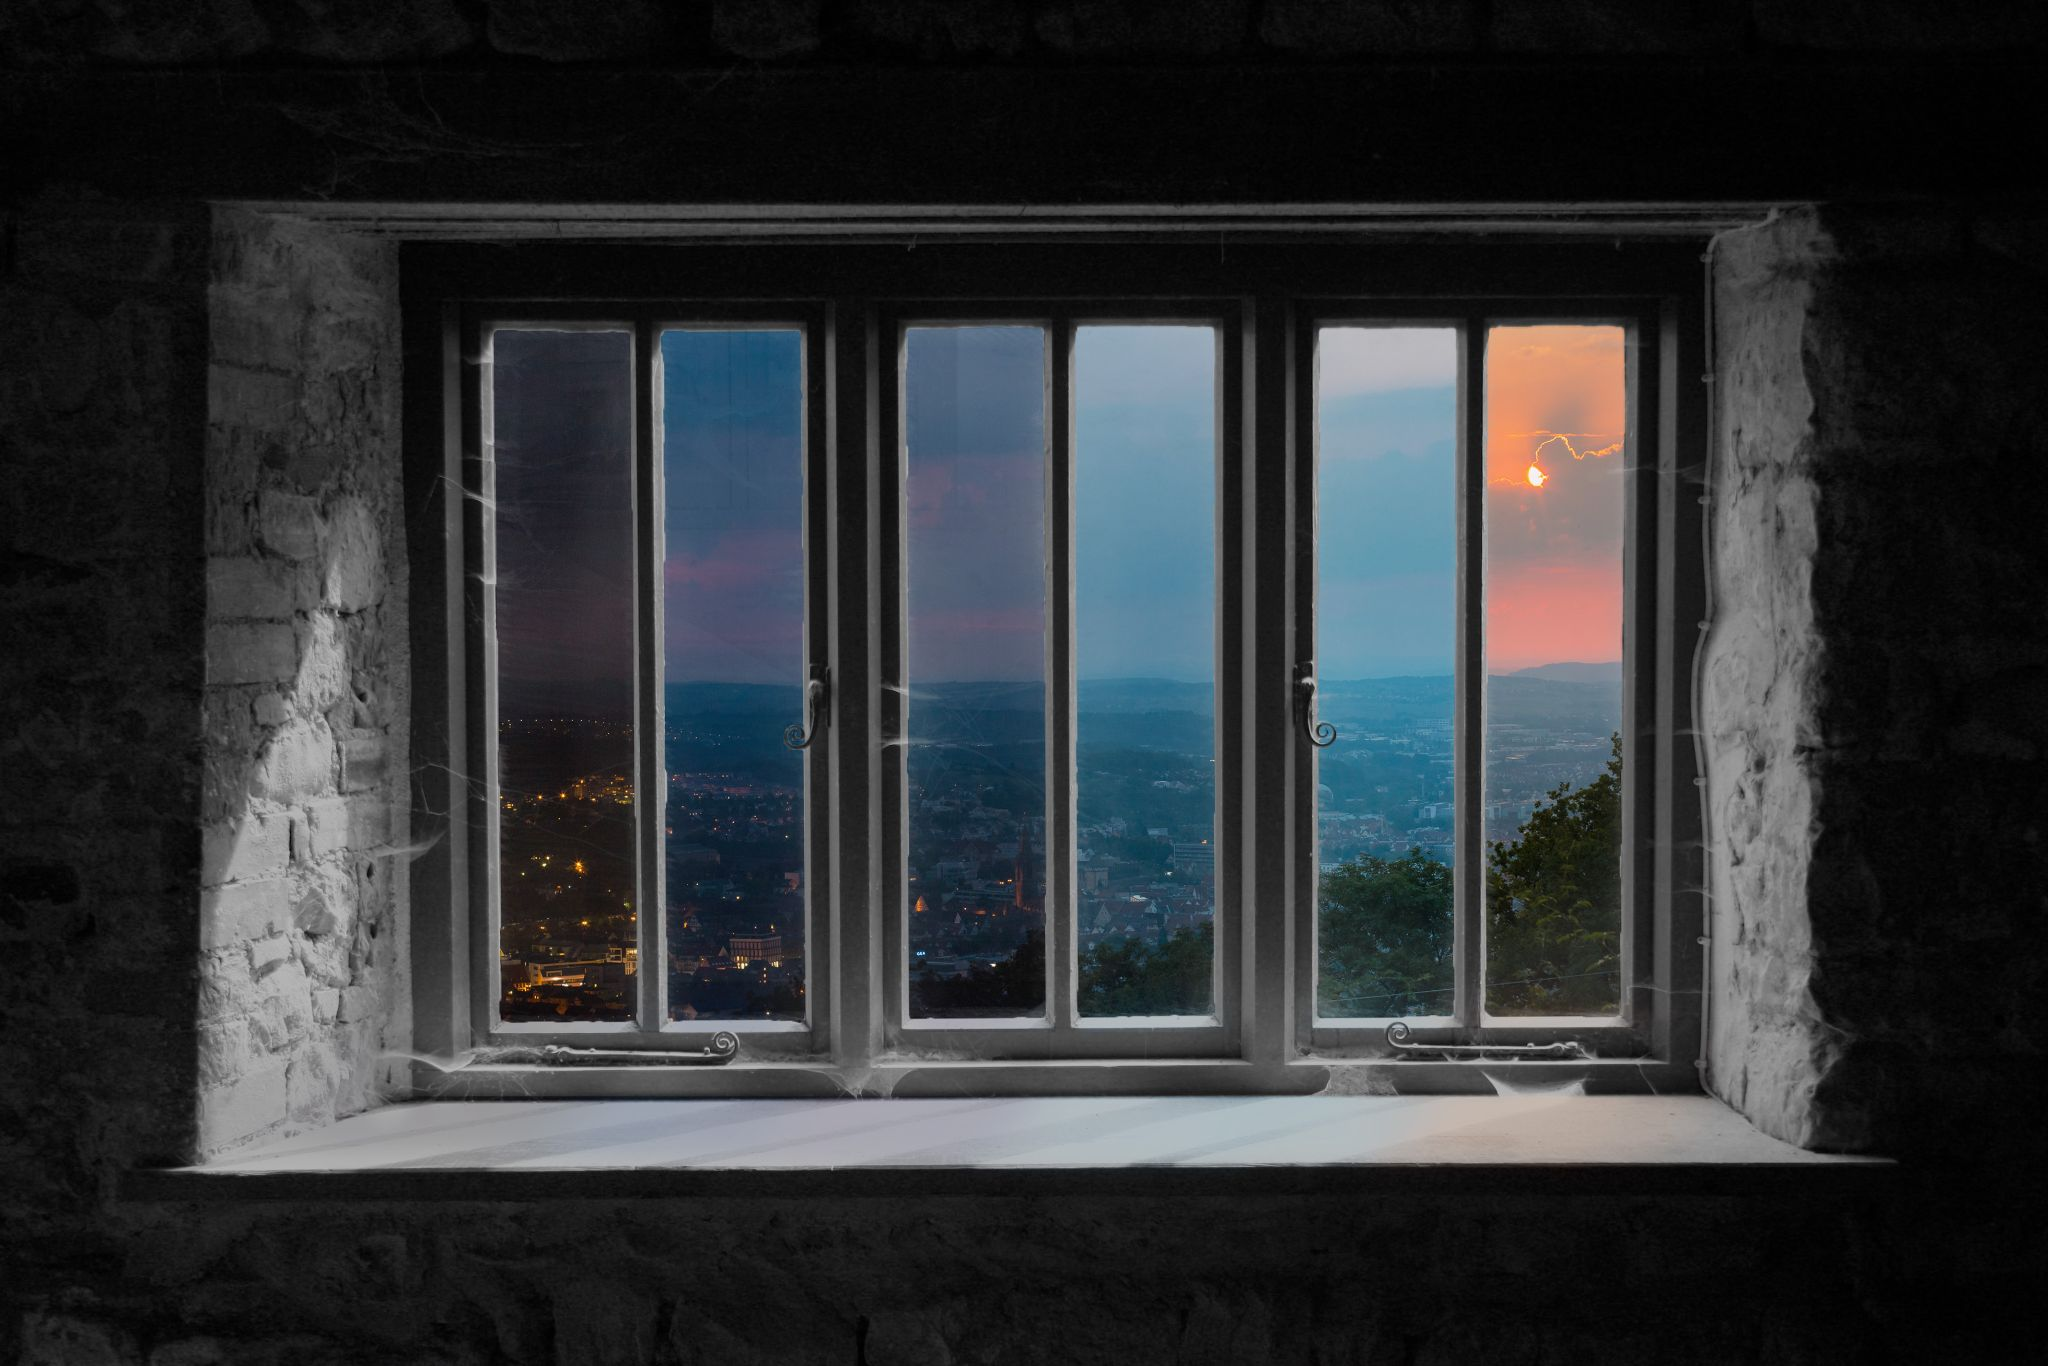 The Window by Jonathan Sautter